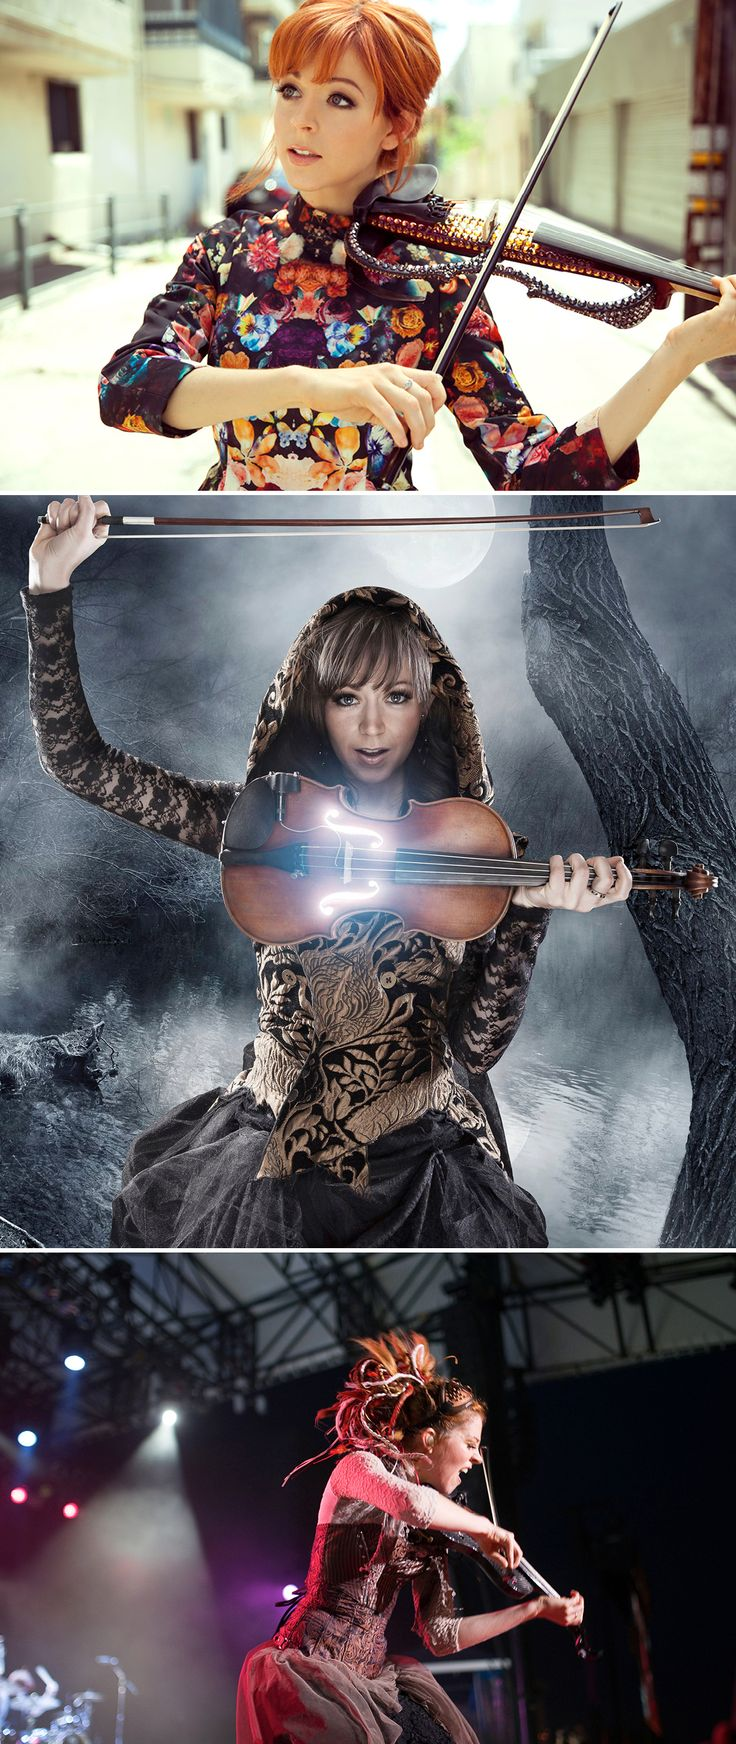 Today's #SundaySessions are brought to you by the one and only #LindseyStirling. Lindsey has sold over a million singles worldwide, has 5.7 million subscribers on YouTube and over 800 million video views! She's living the dream! Read our interview with Lindsey : http://www.creation.com.es/lindsey-stirling/